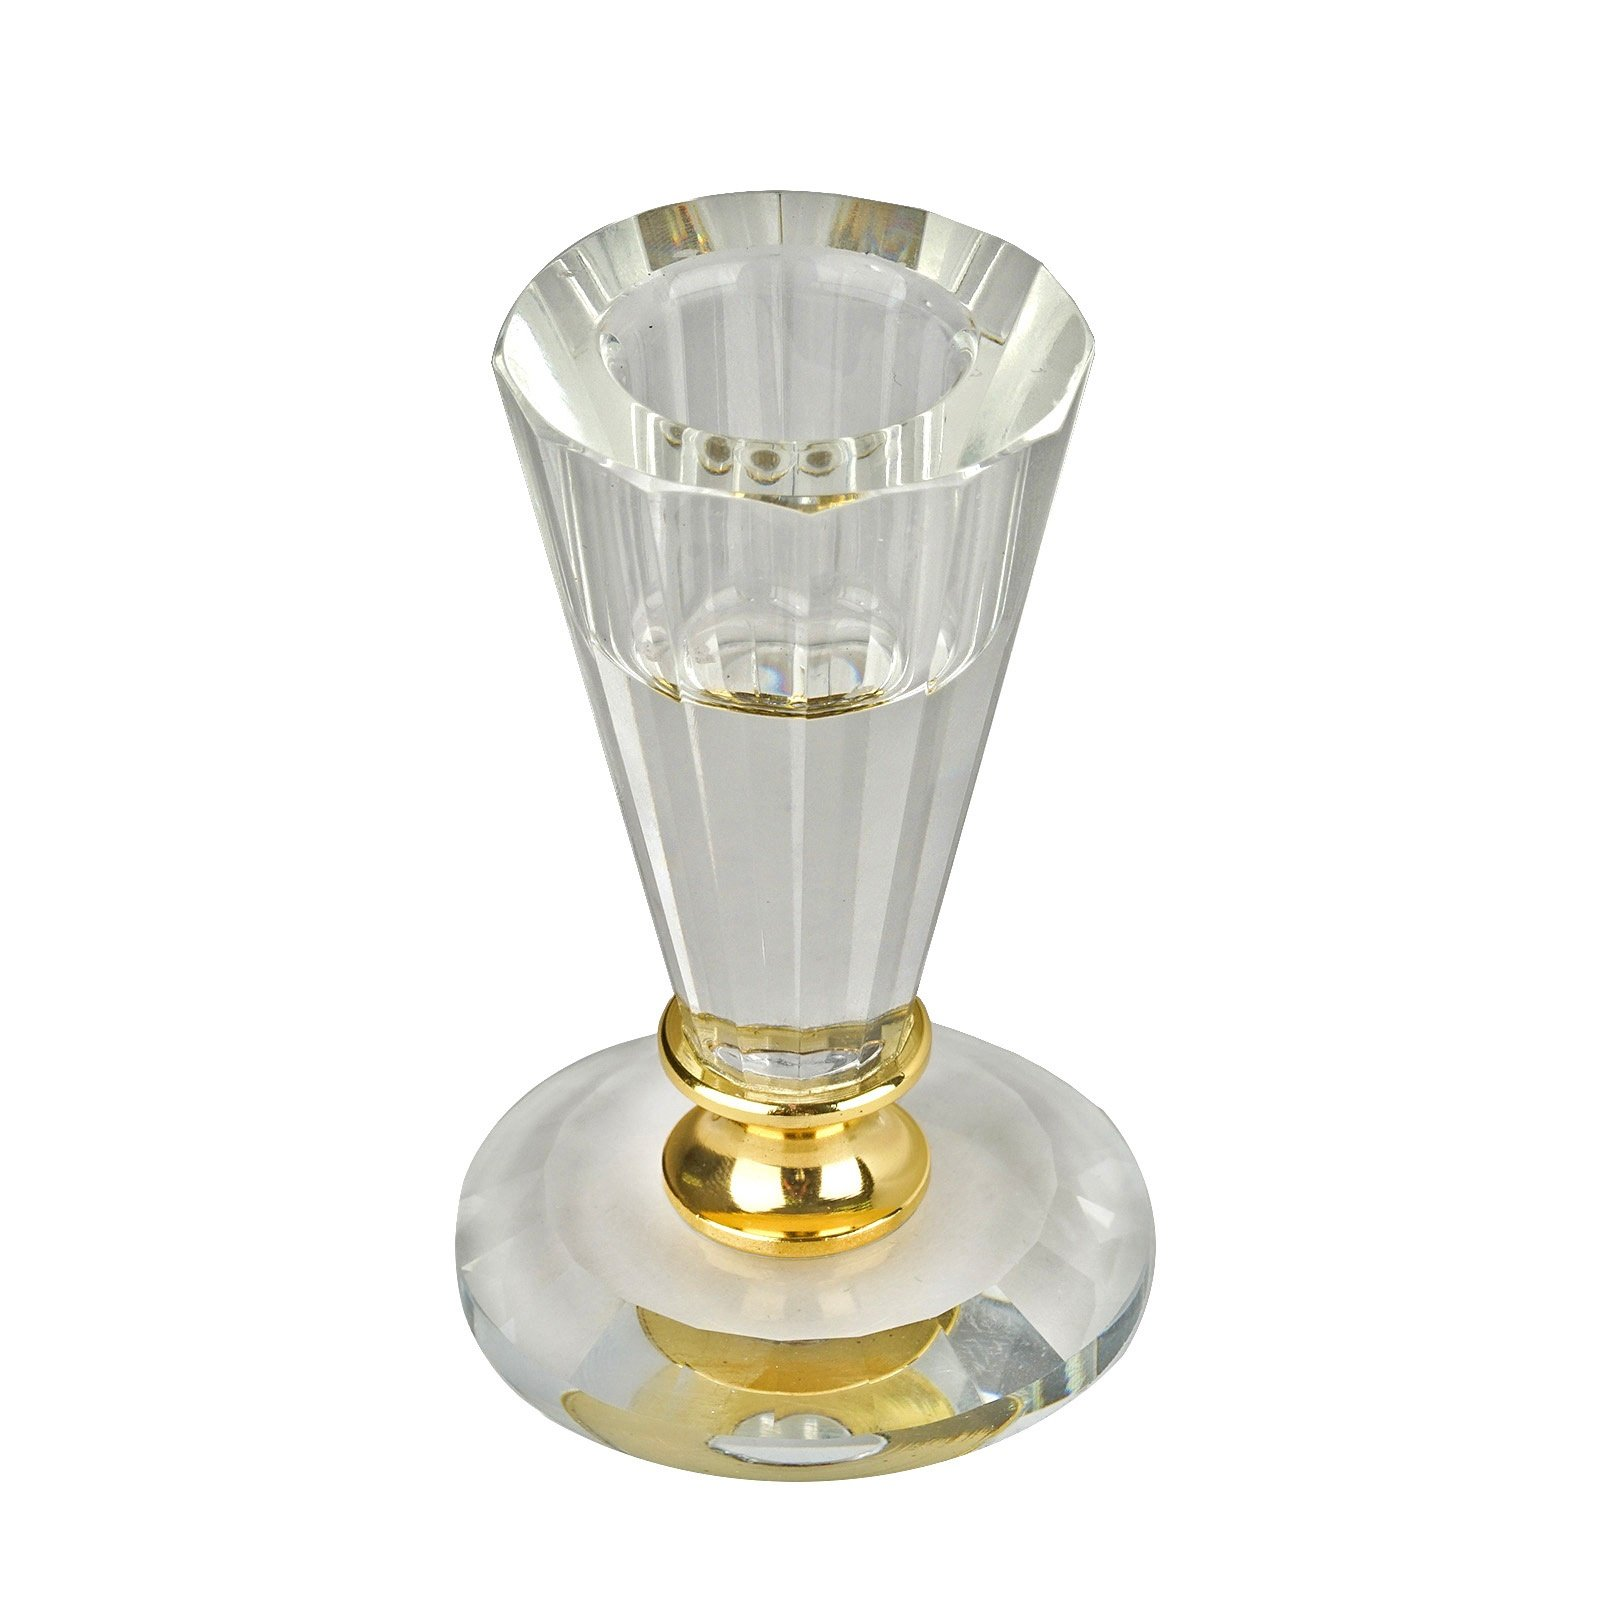 Efavormart 3 Gemcut Egyptian Handcrafted Glass Crystal Votive Candlestick Holder With Gold Metal Stem Table Top Wedding Centerpi Walmart Com Walmart Com